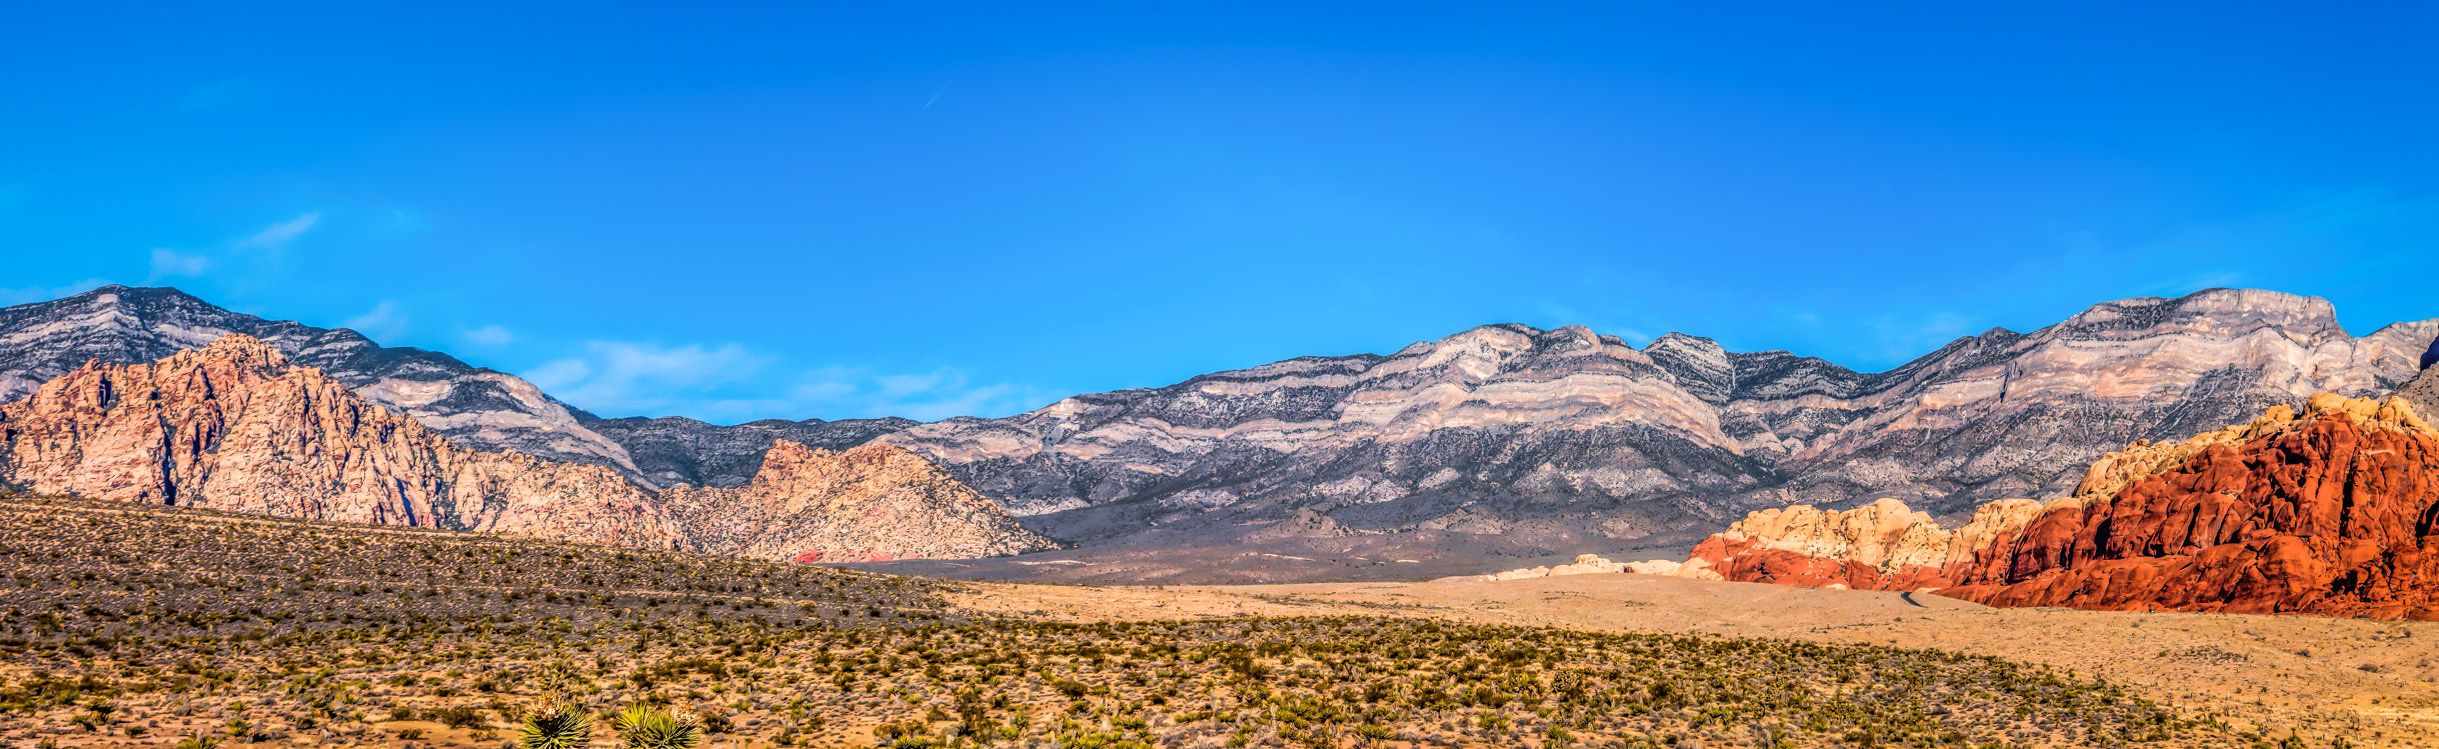 A sweeping panorama of the desert landscape of Nevada's Red Rock Canyon National Conservation Area.